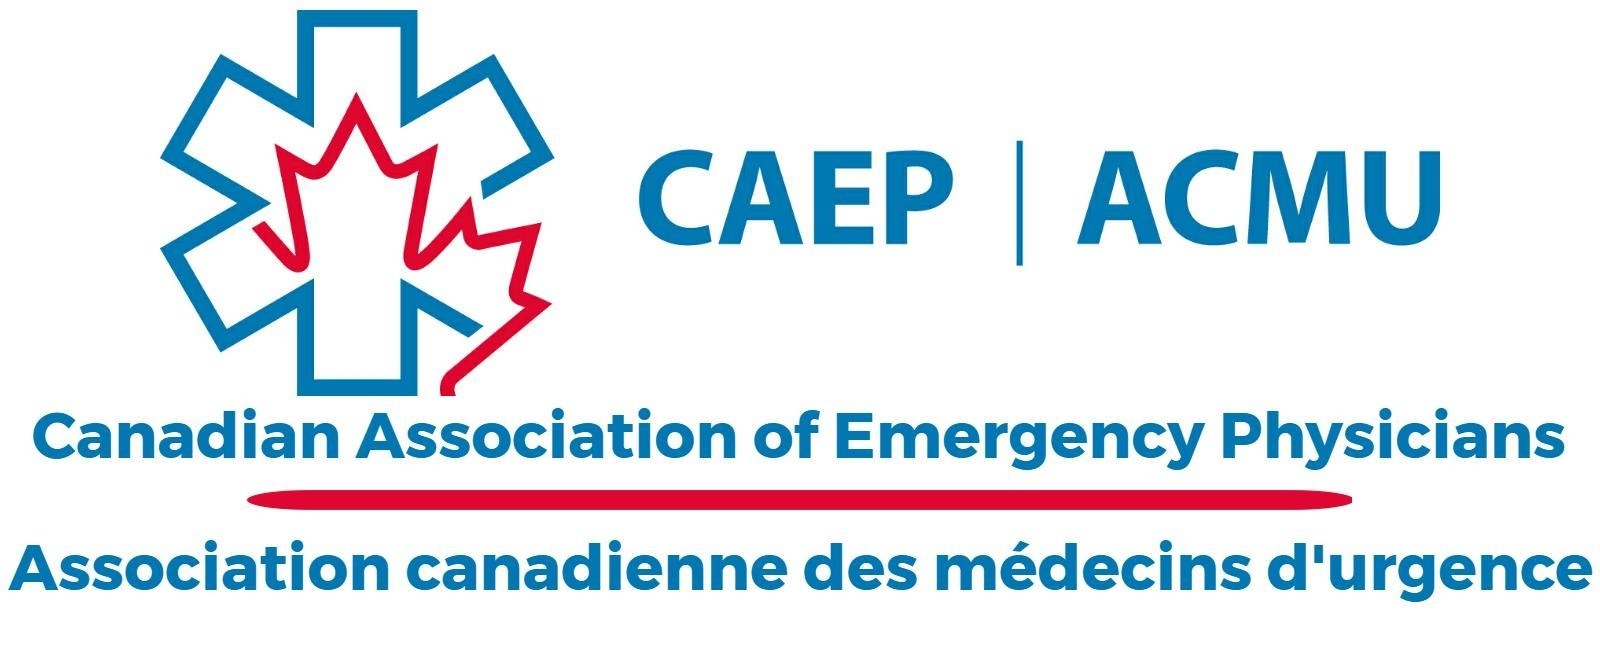 buy online 020e3 4b39e Canadian Association of Emergency Physicians The Canadian Associ.jpg p publish